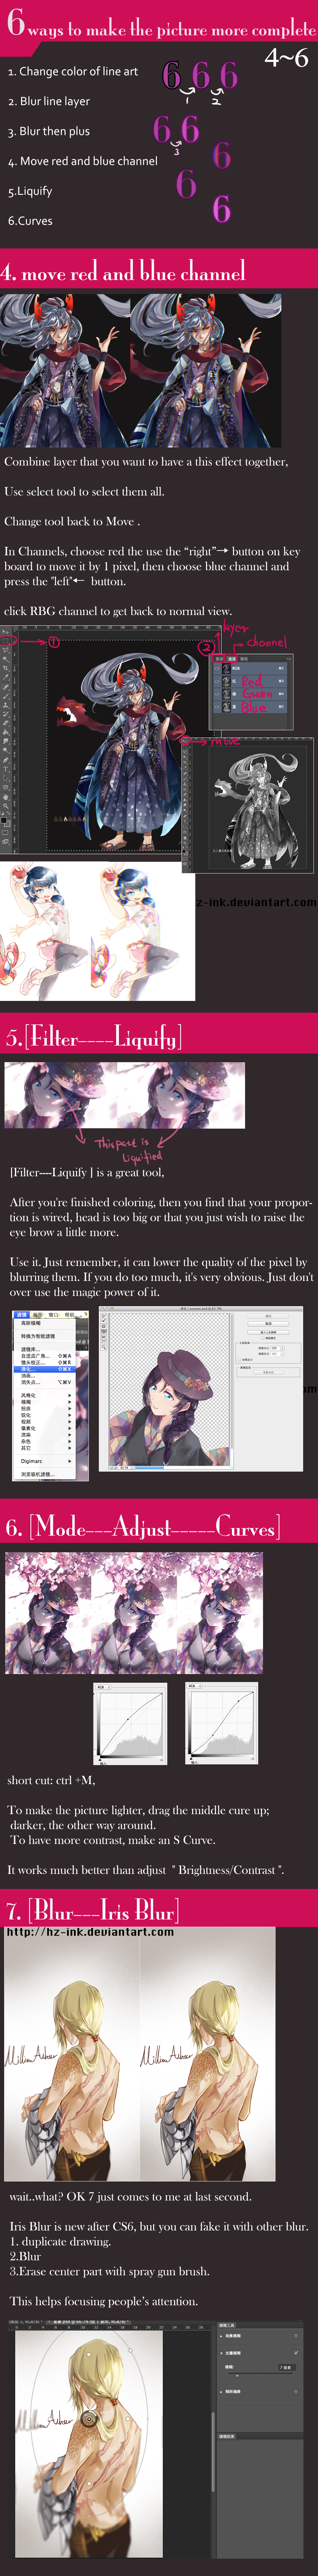 6 ways to make the picture more complete(2/2) by HZ-ink